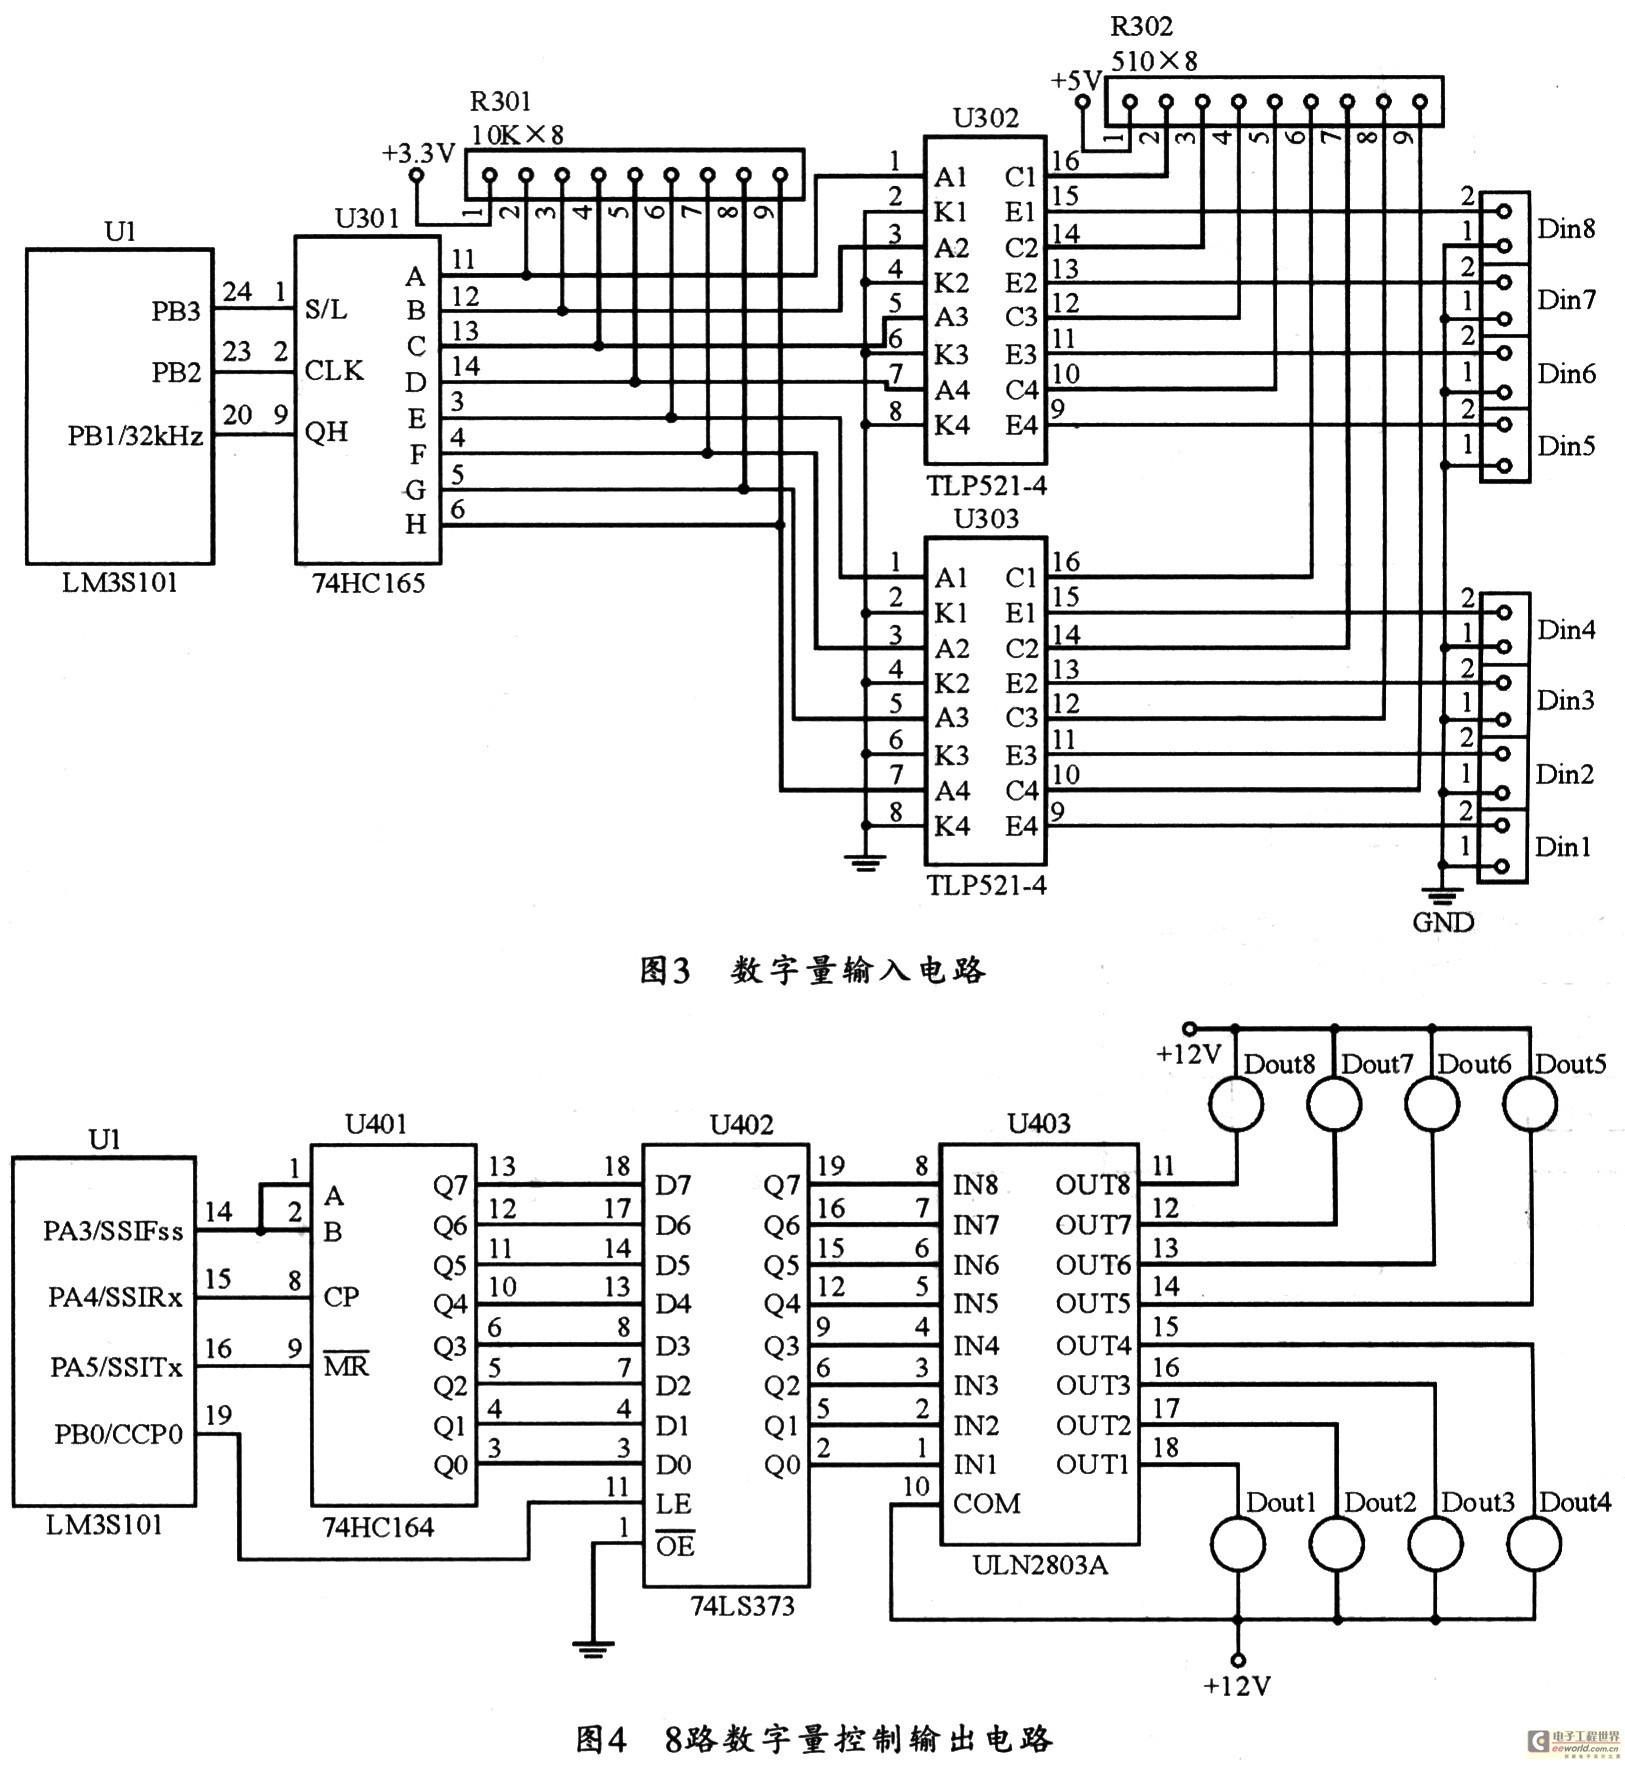 The figure based on LM3S101 adopts the controller to design